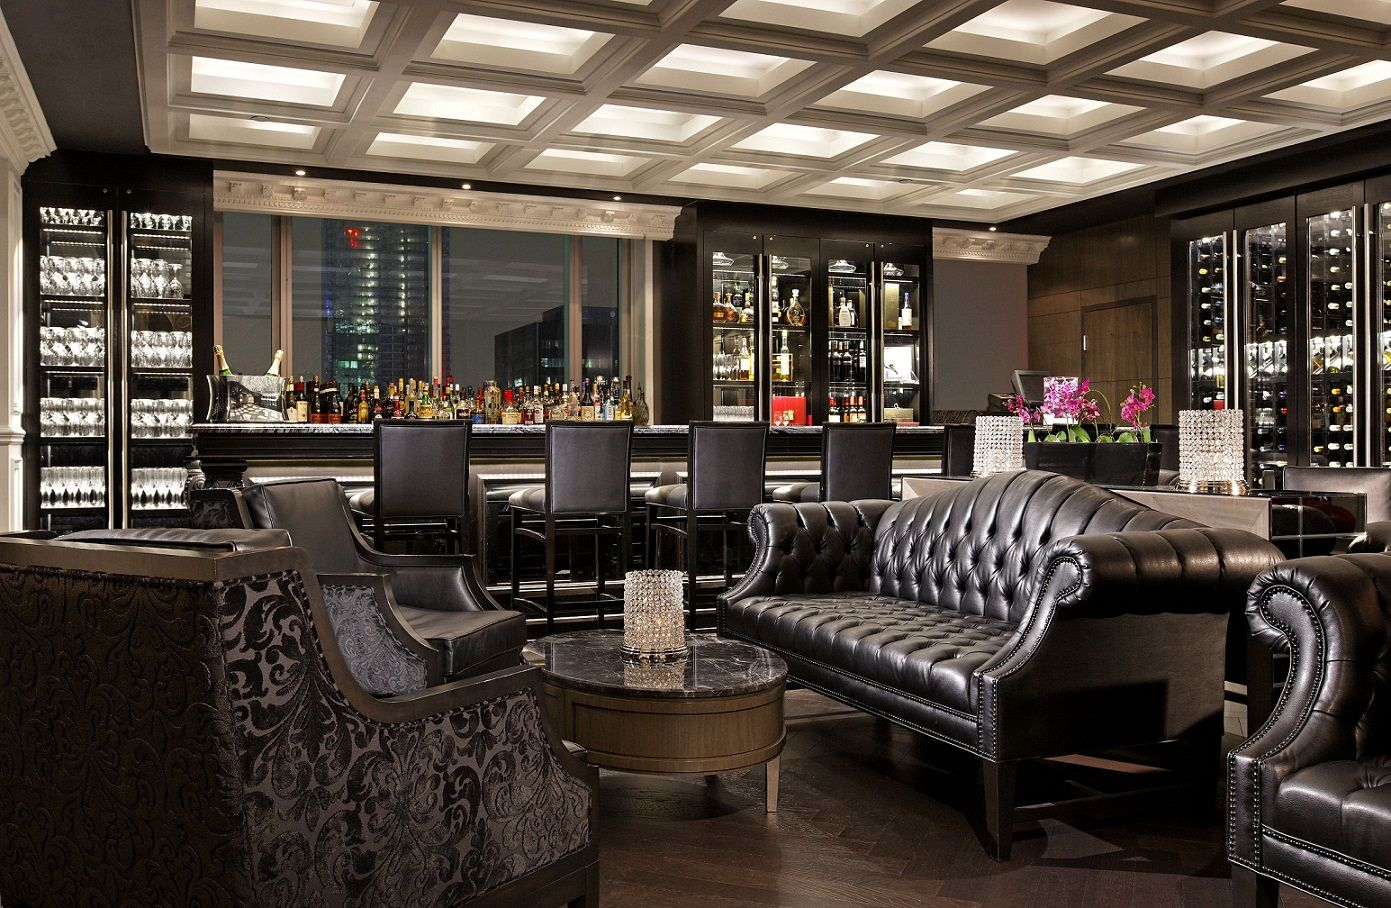 Restaurant Fine Dining Award Stock Canada From The Association For Retail Environments A